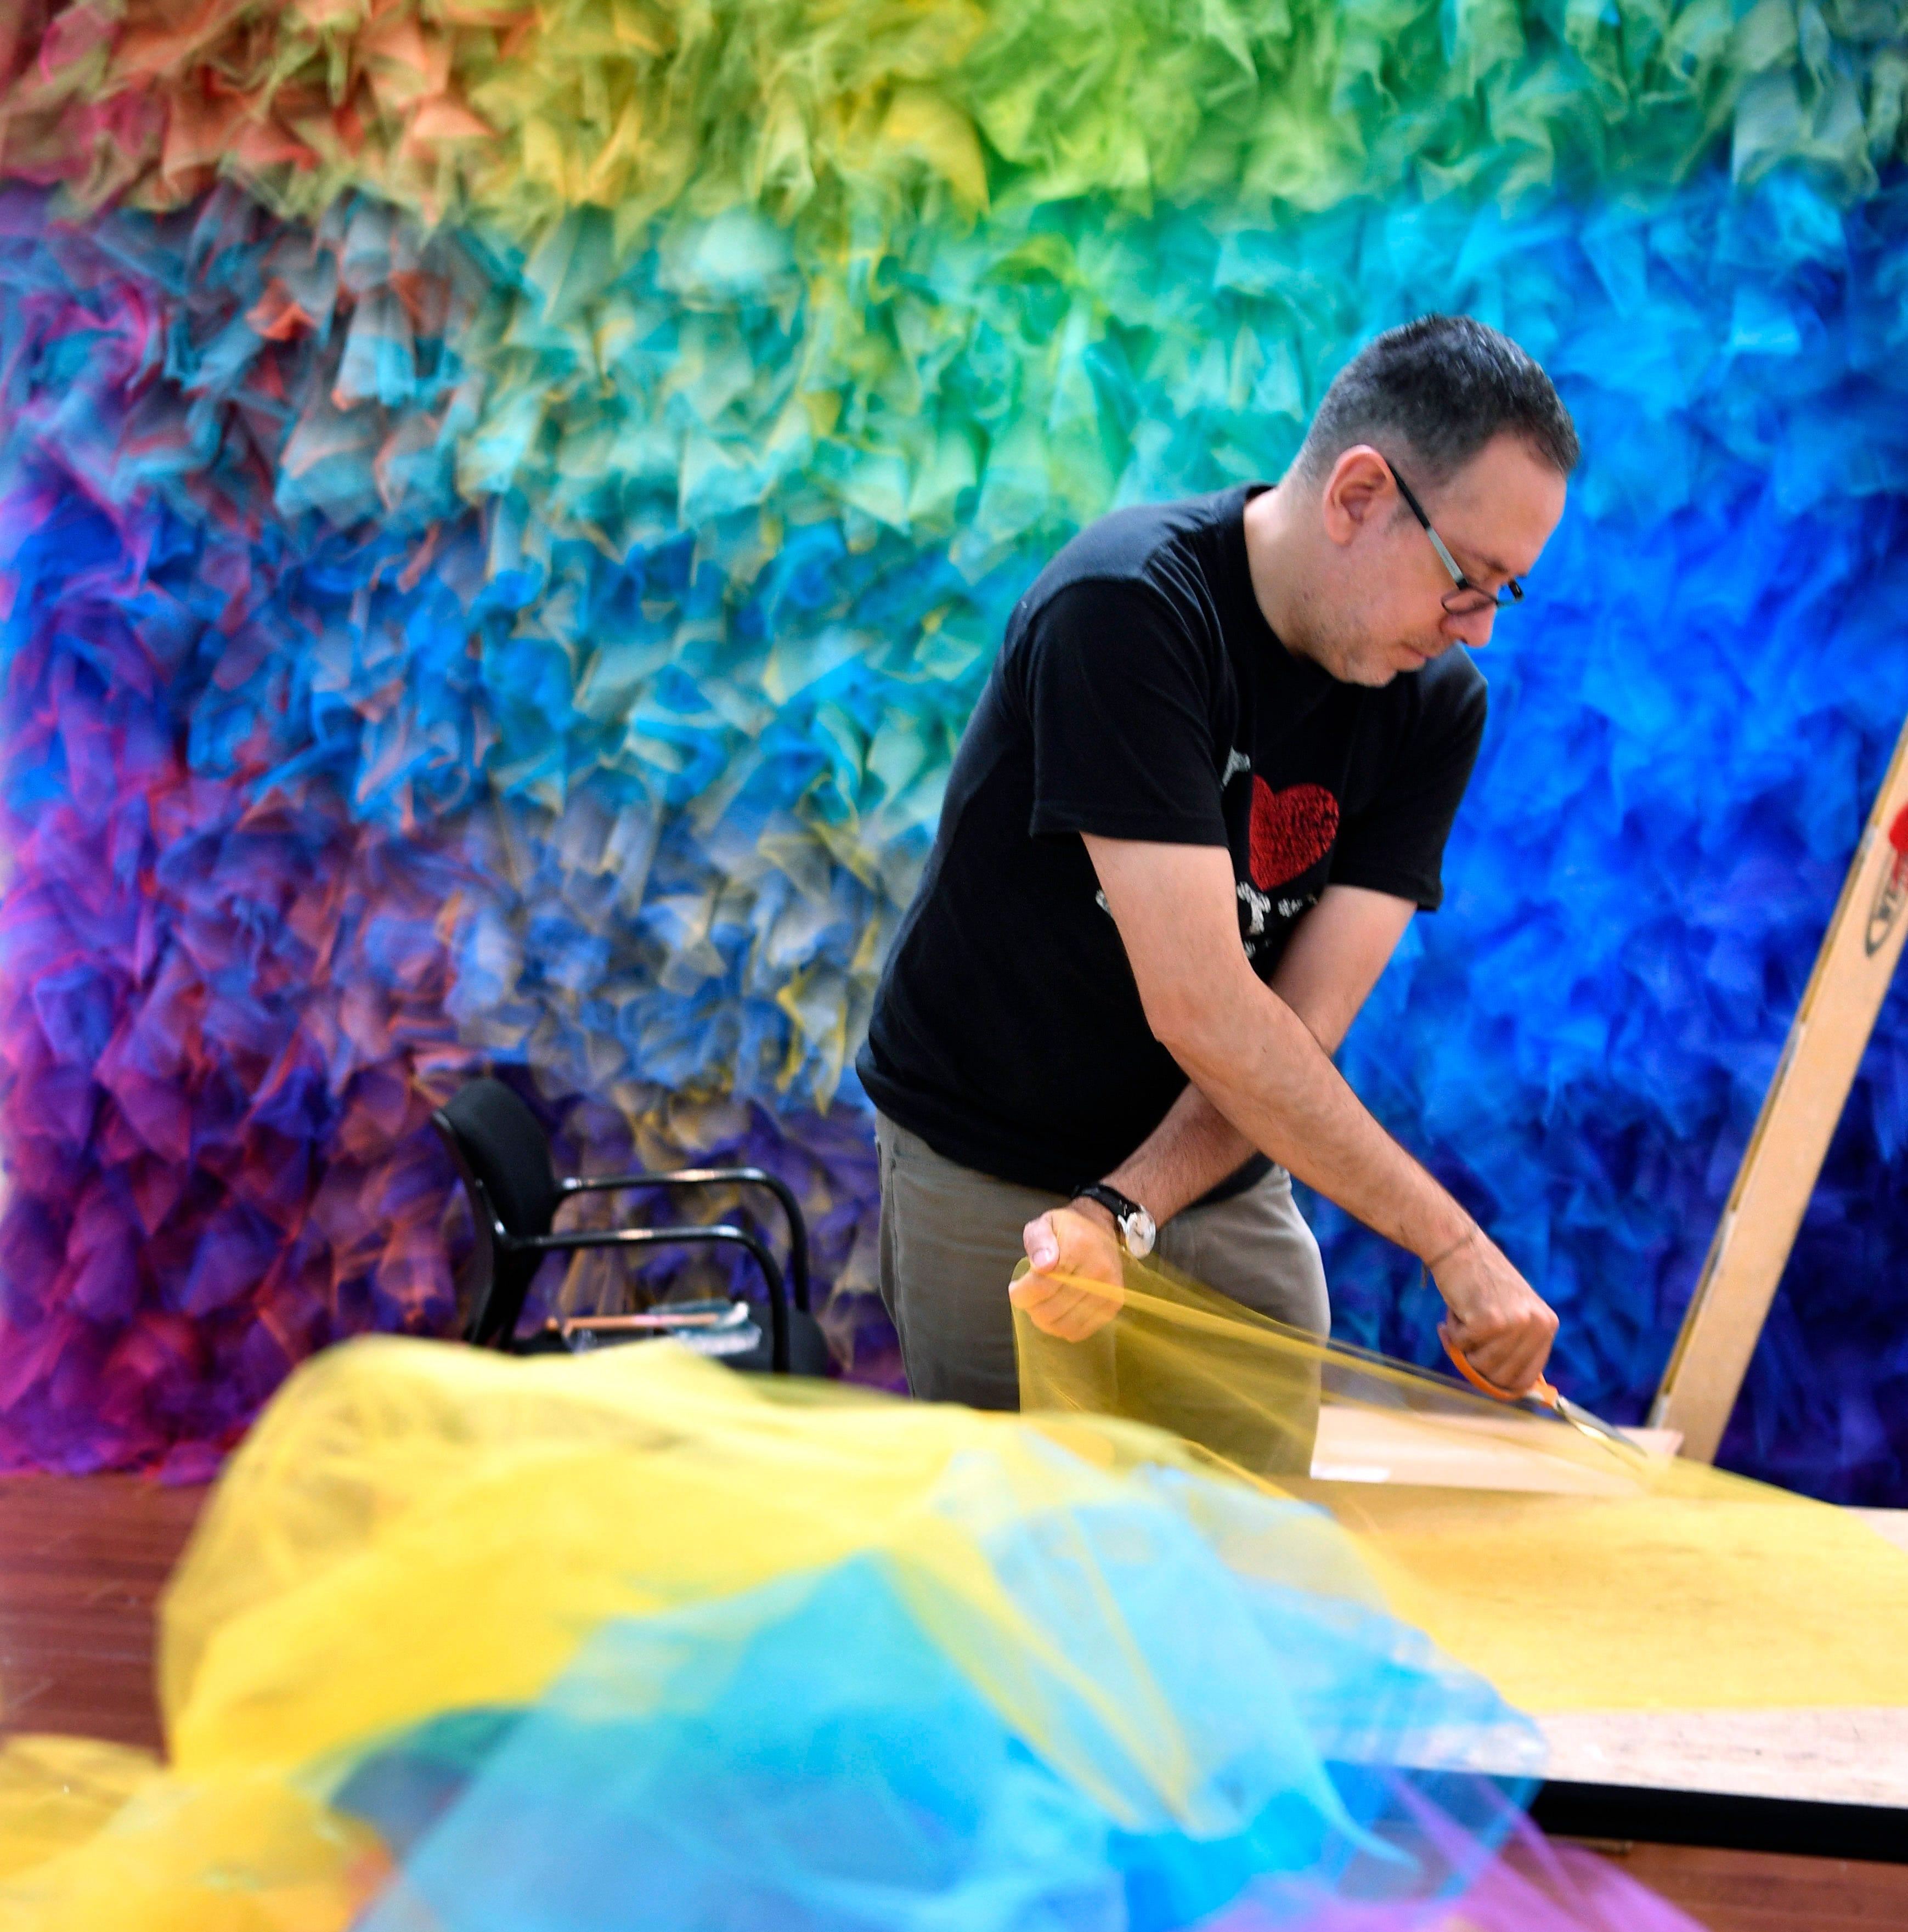 Artist-in-residence Gabriel Dawe makes rainbows at Cheekwood